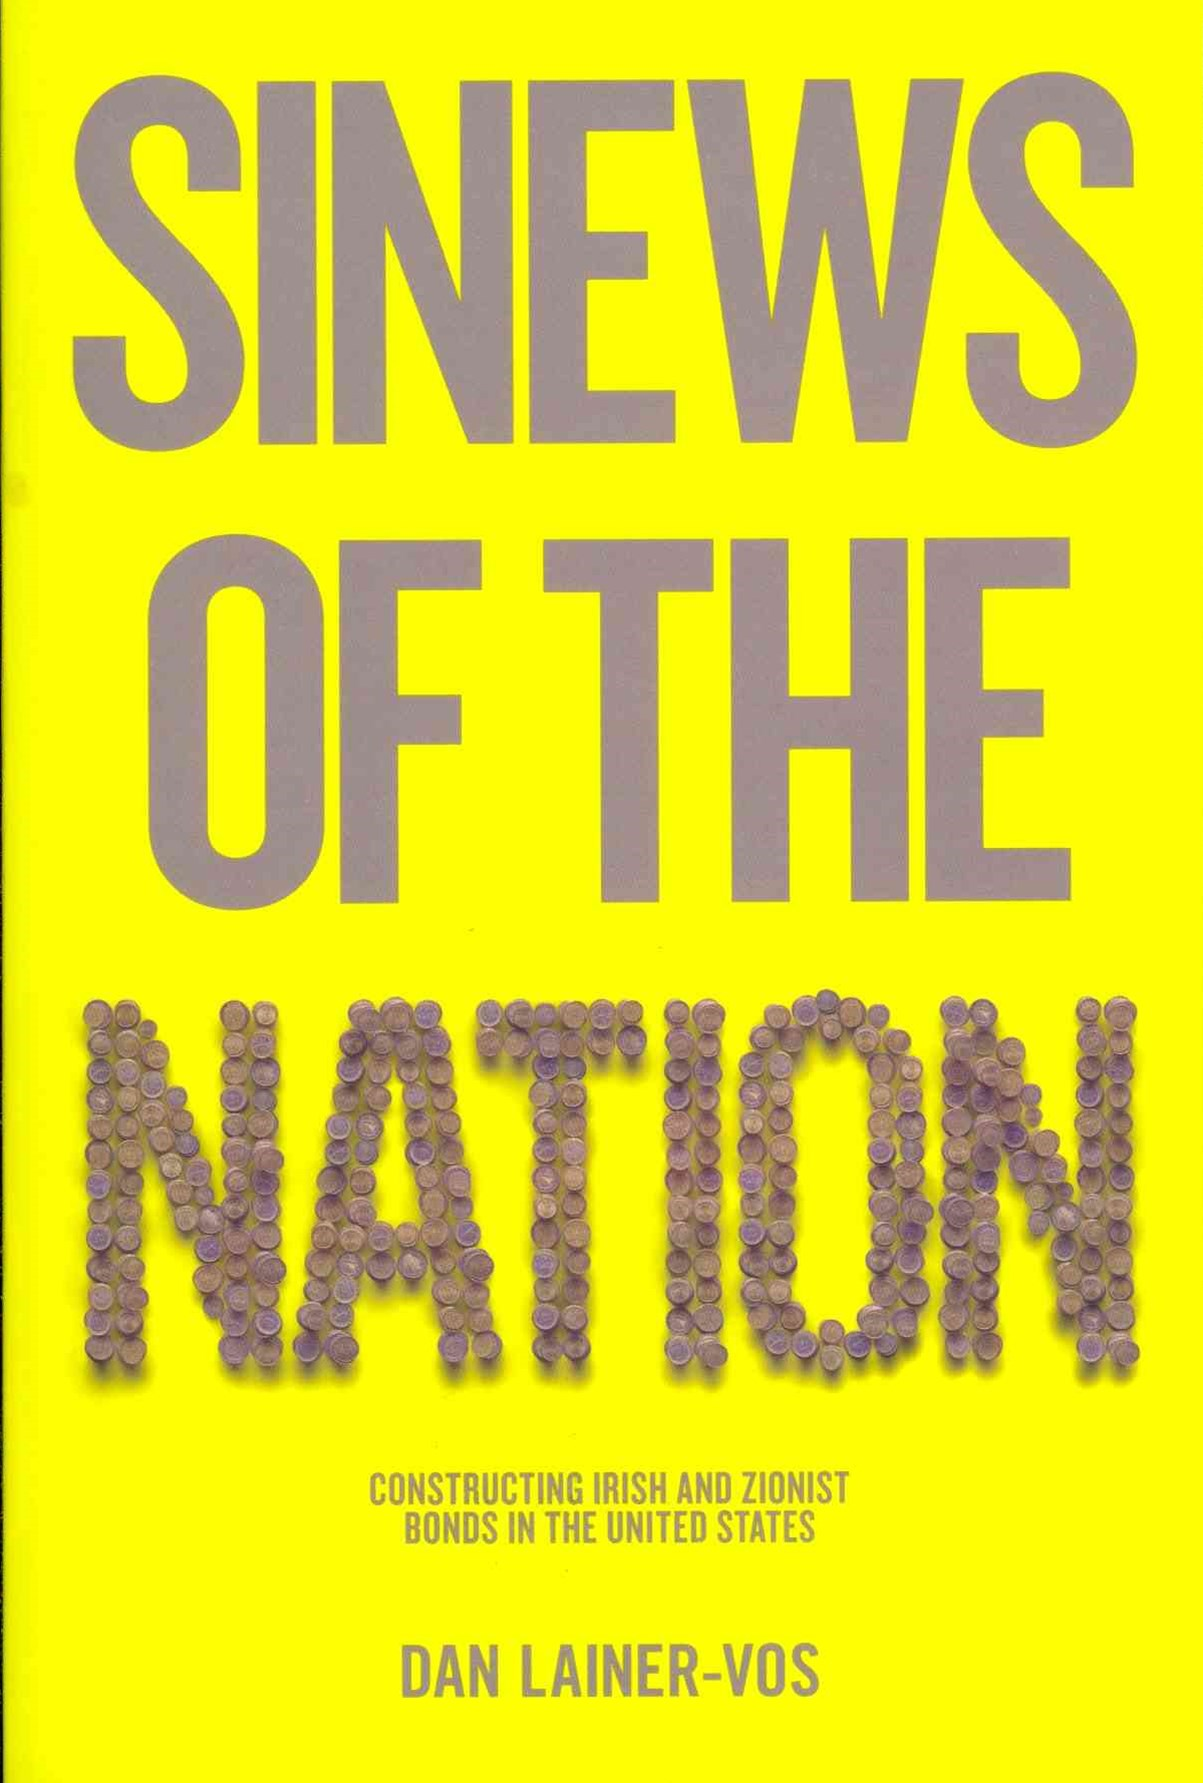 Sinews of the Nation - Constructing Irish and     Zionist Bonds in the United States